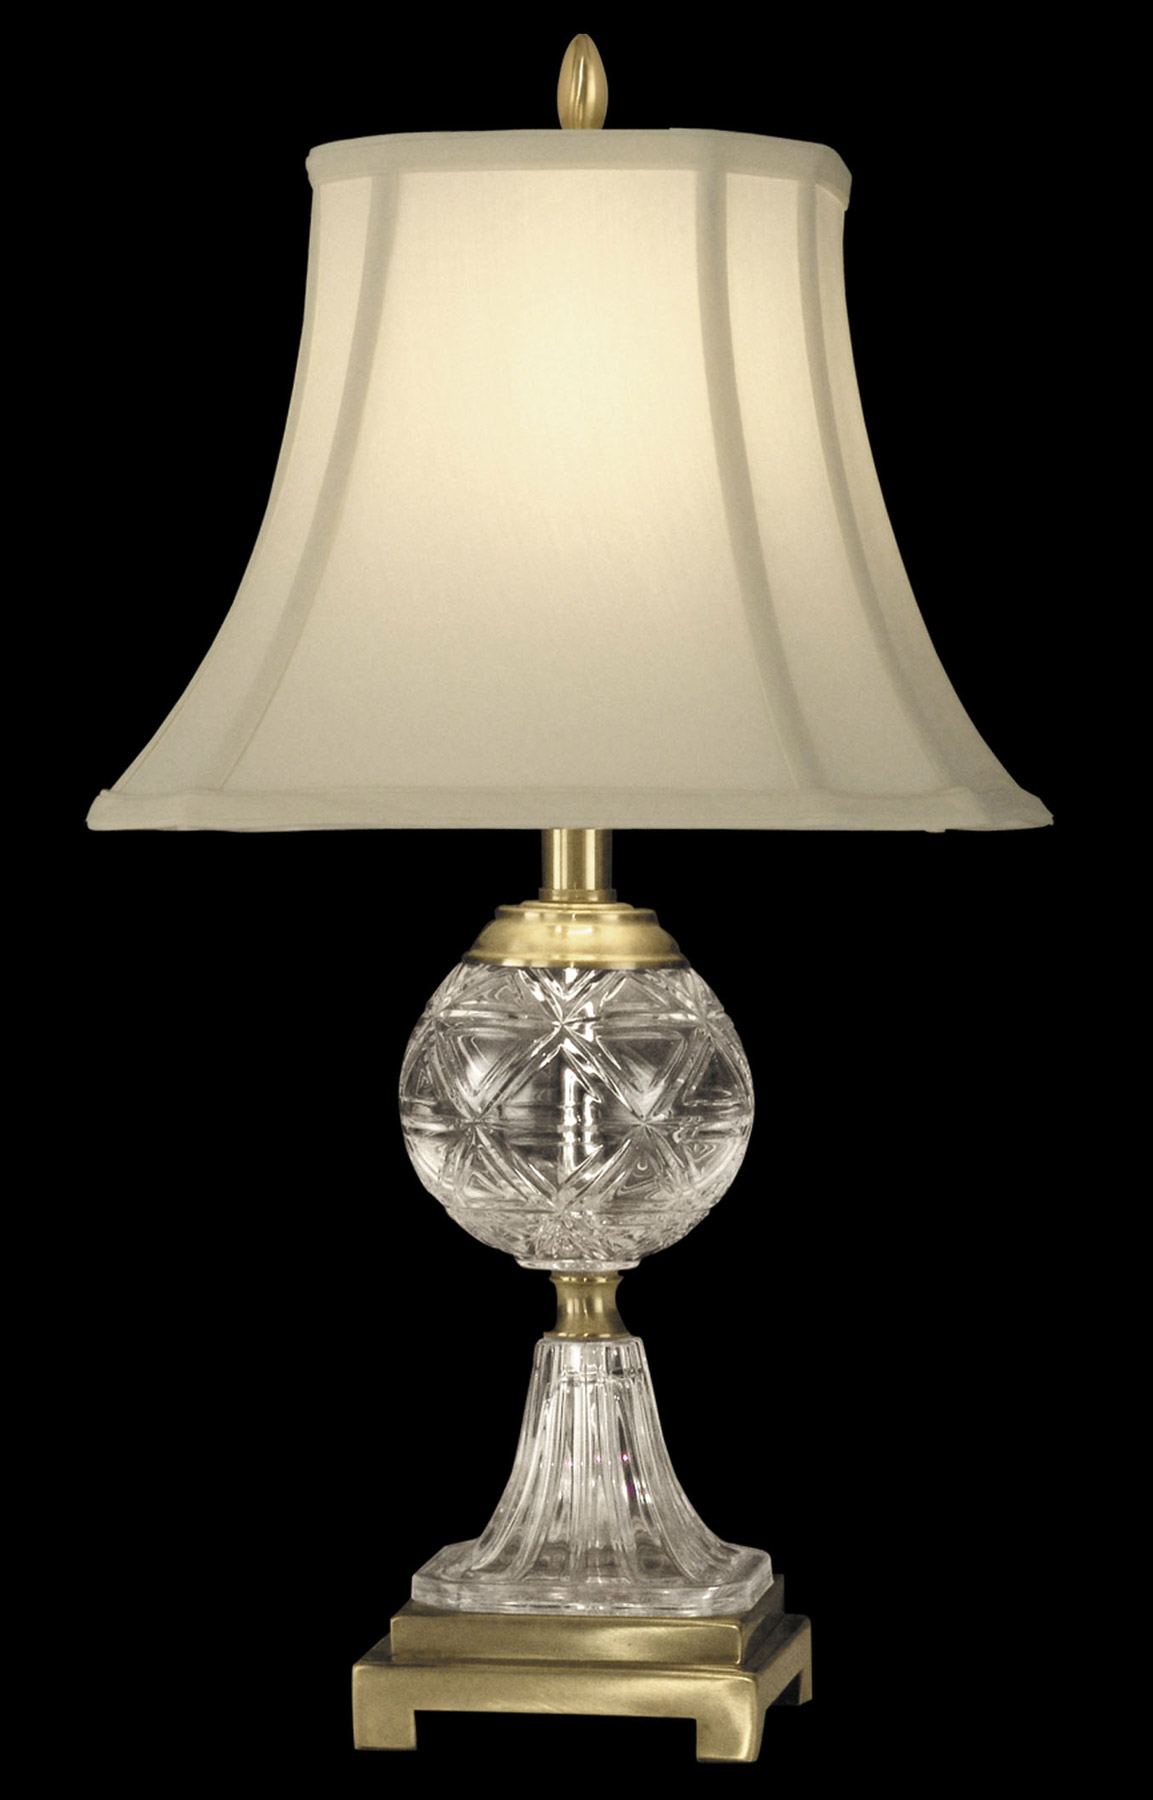 Wildwood Lamps Discontinued